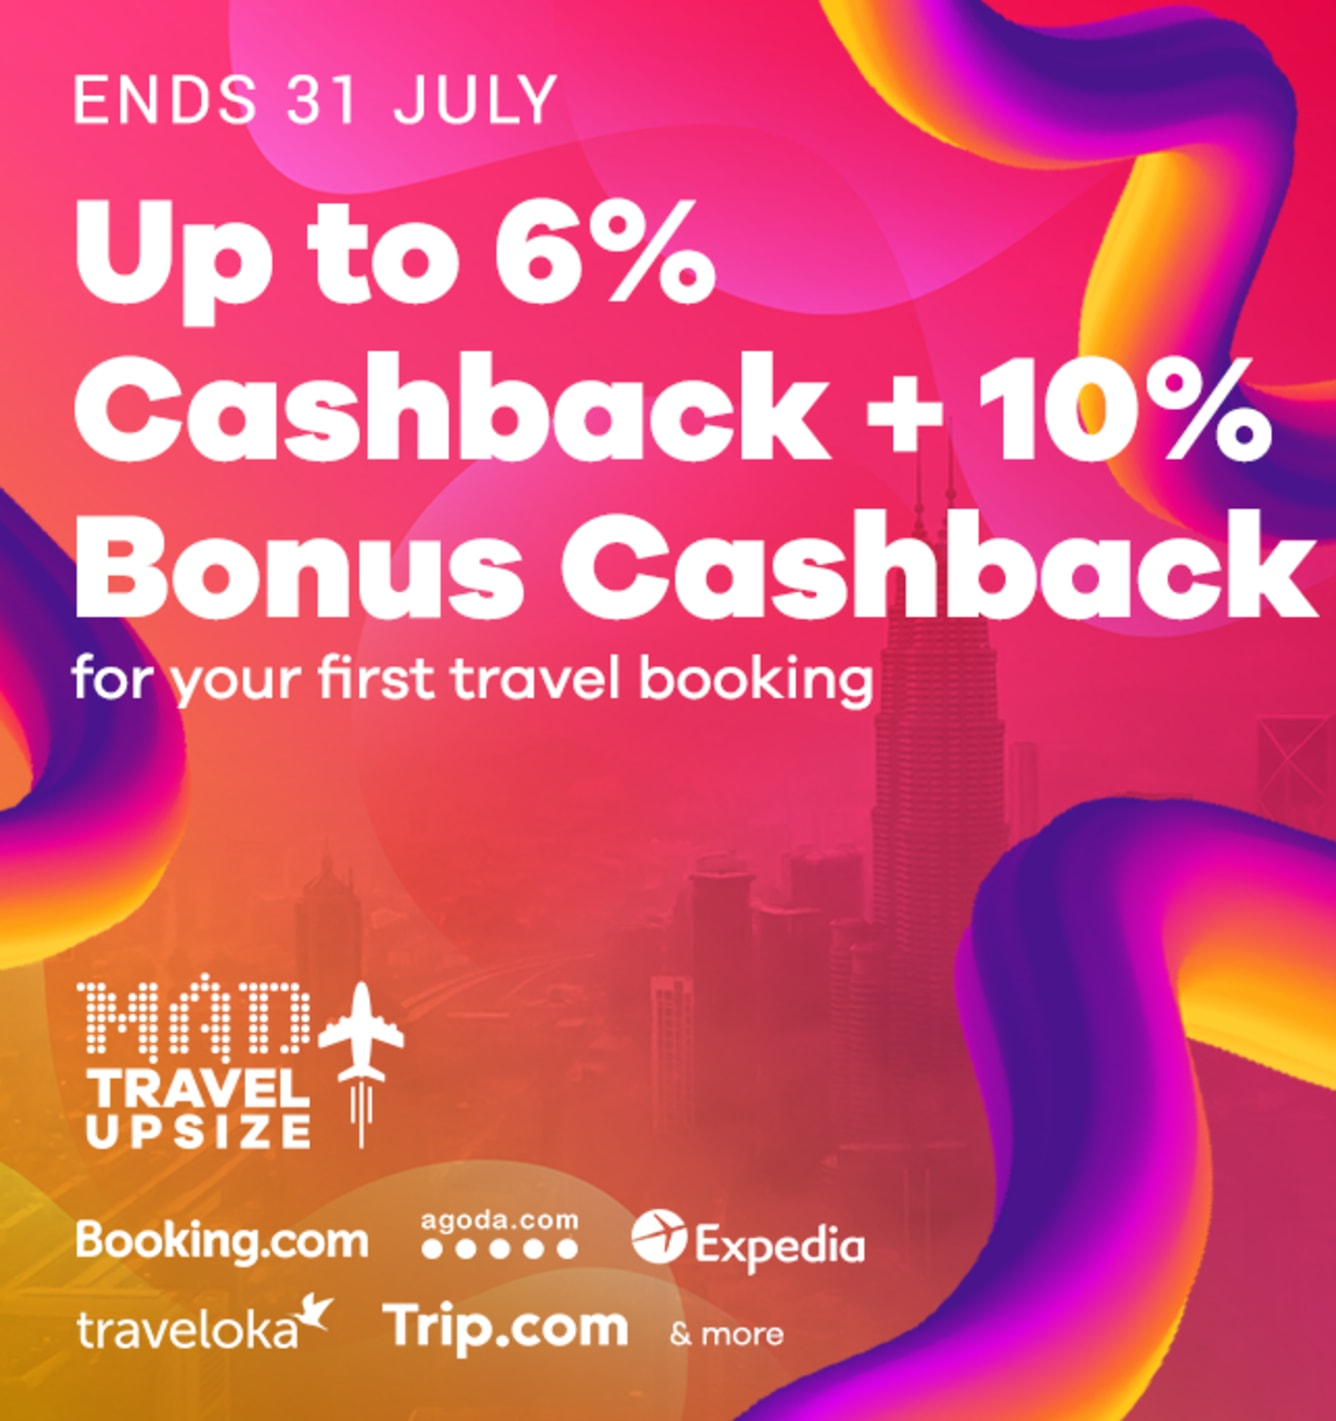 Get 10% Bonus Cashback for Your First Travel Booking